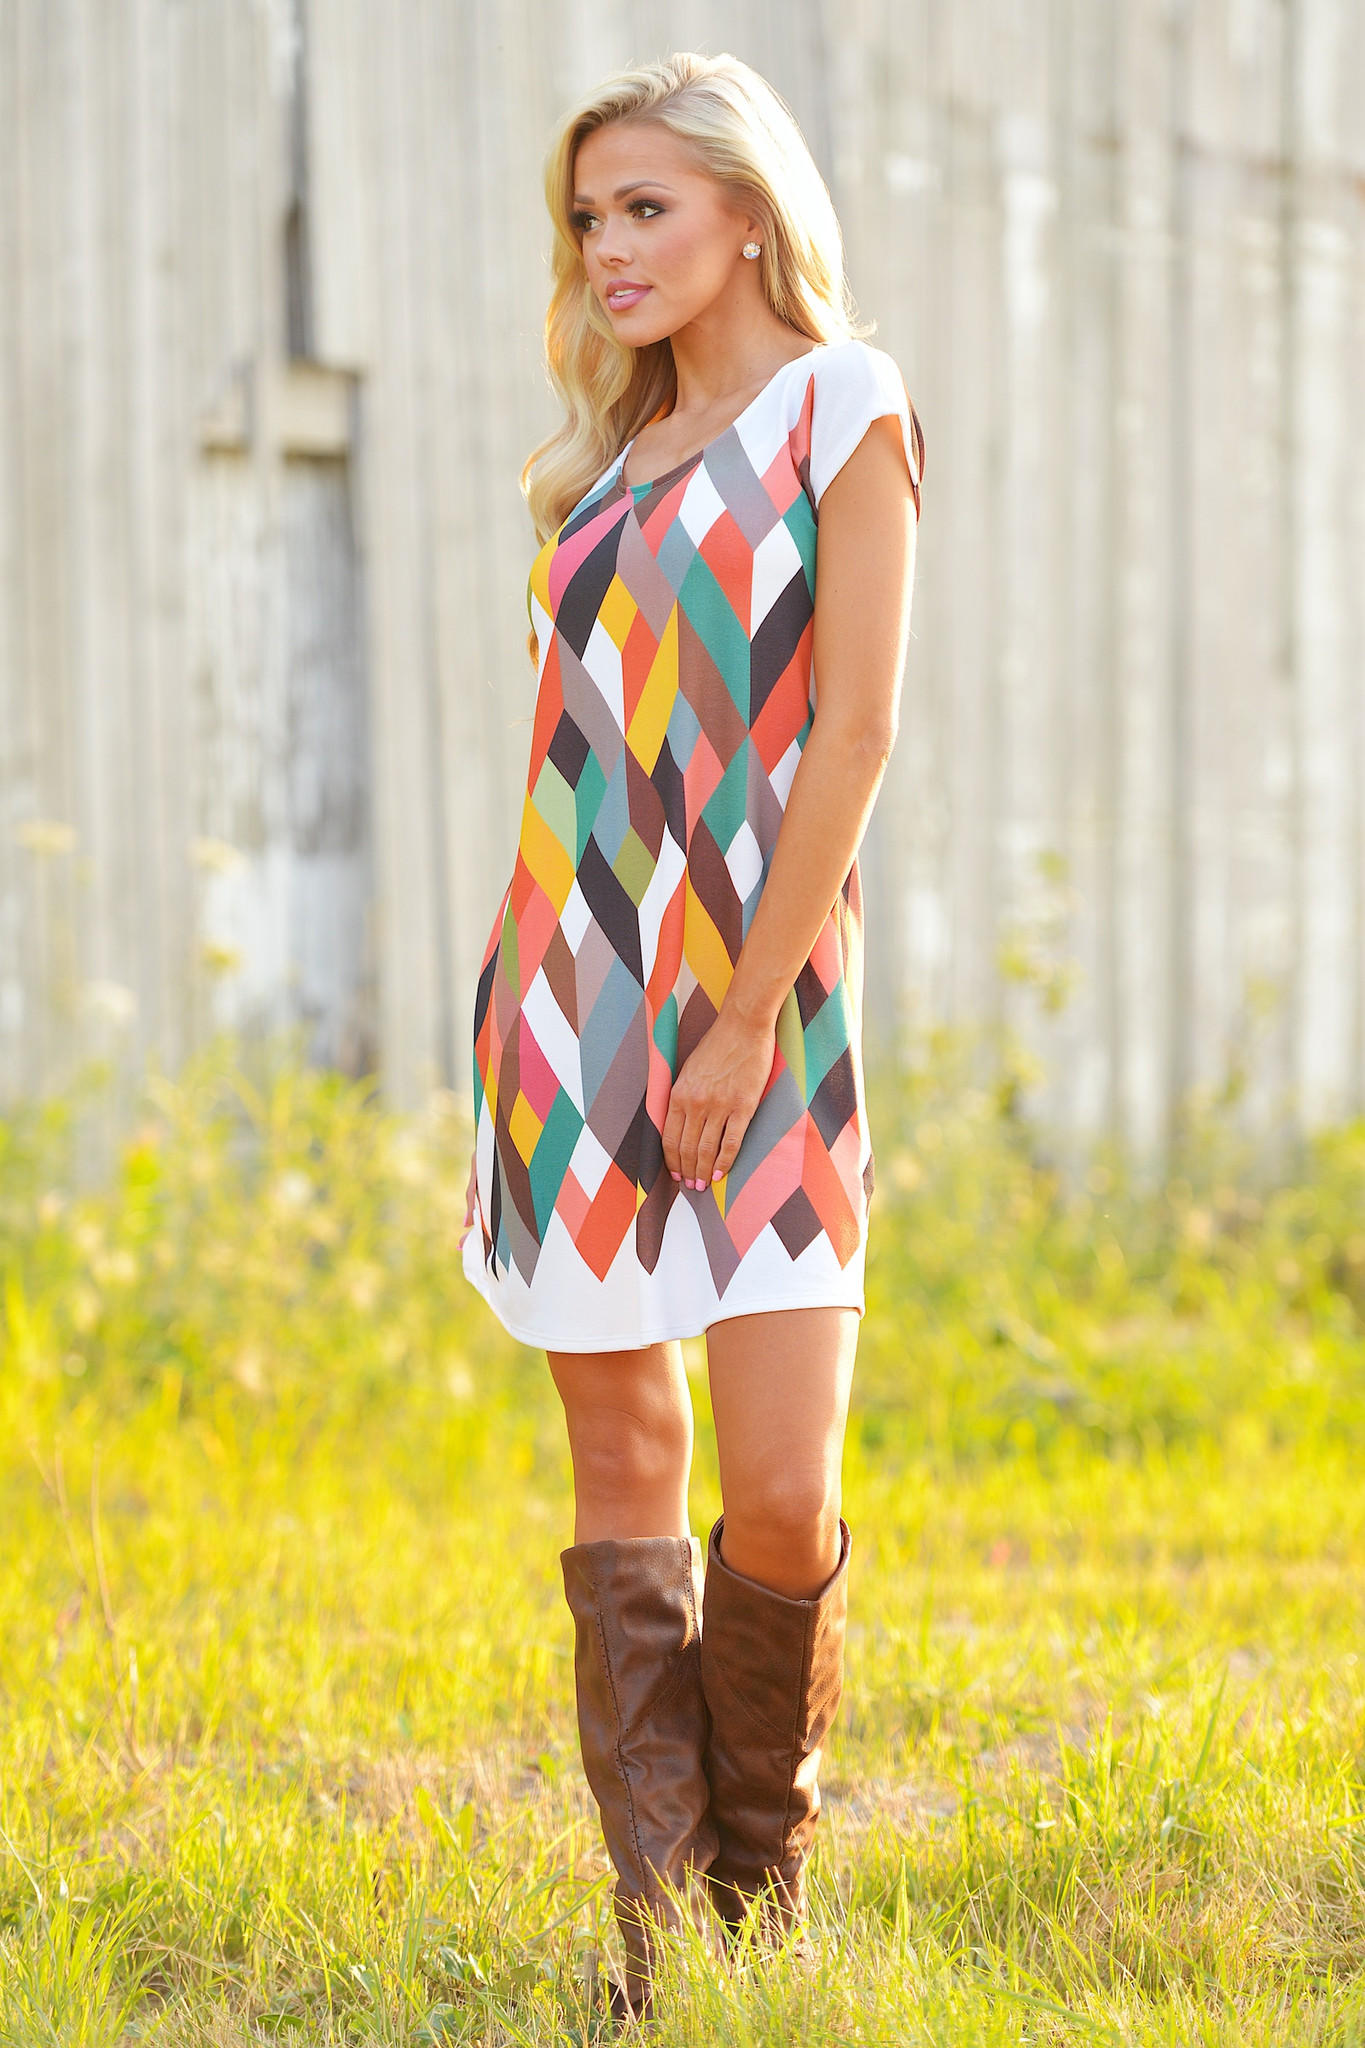 Turning over a new leaf geometric dress images